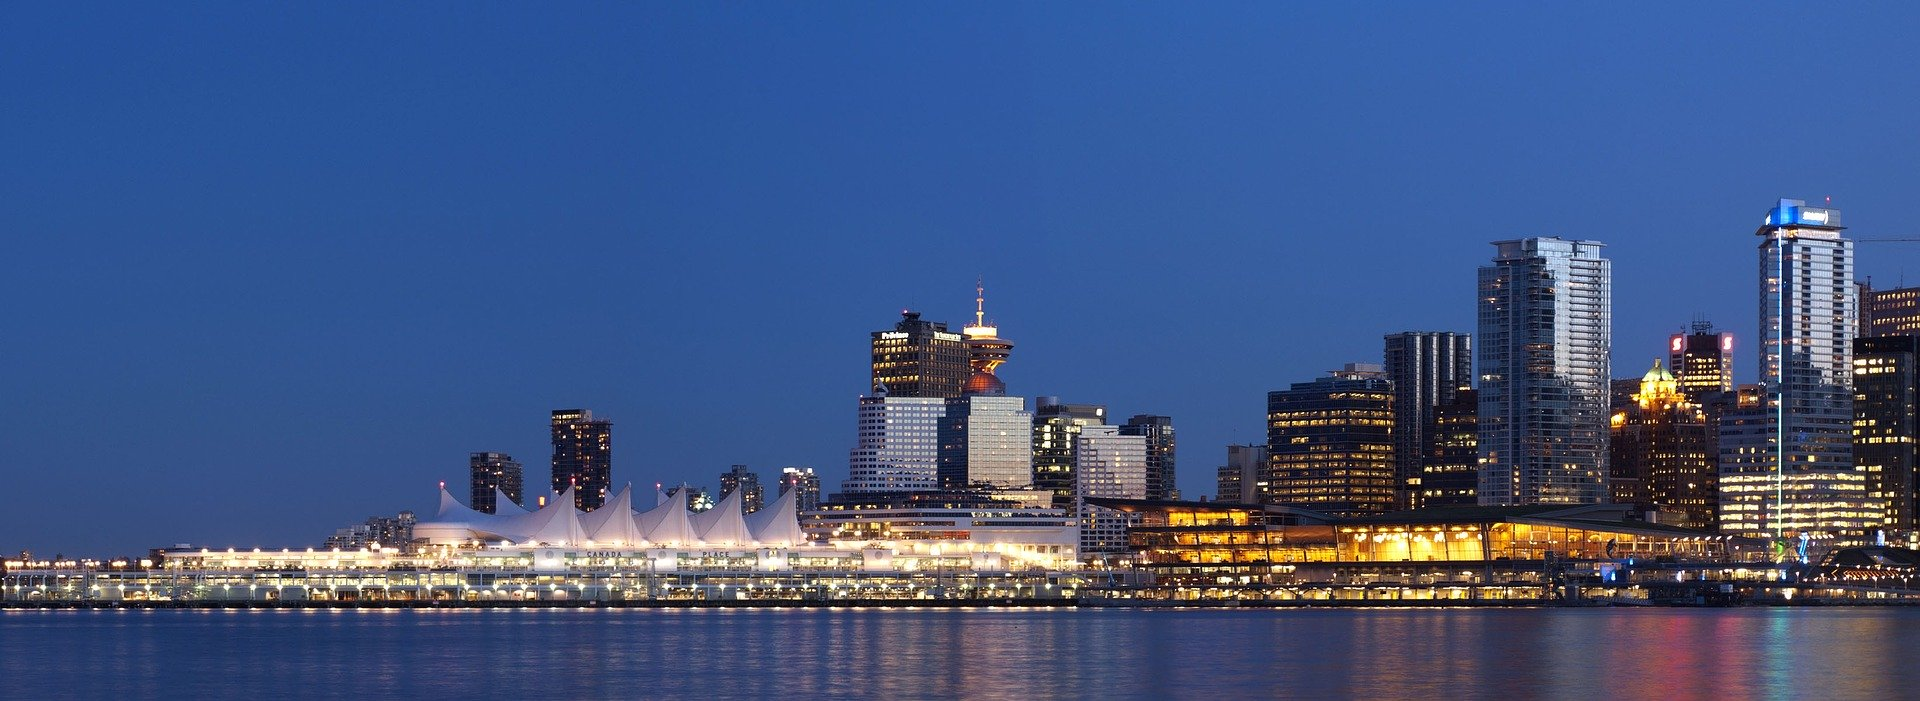 Best cities for Canada immigration 2020